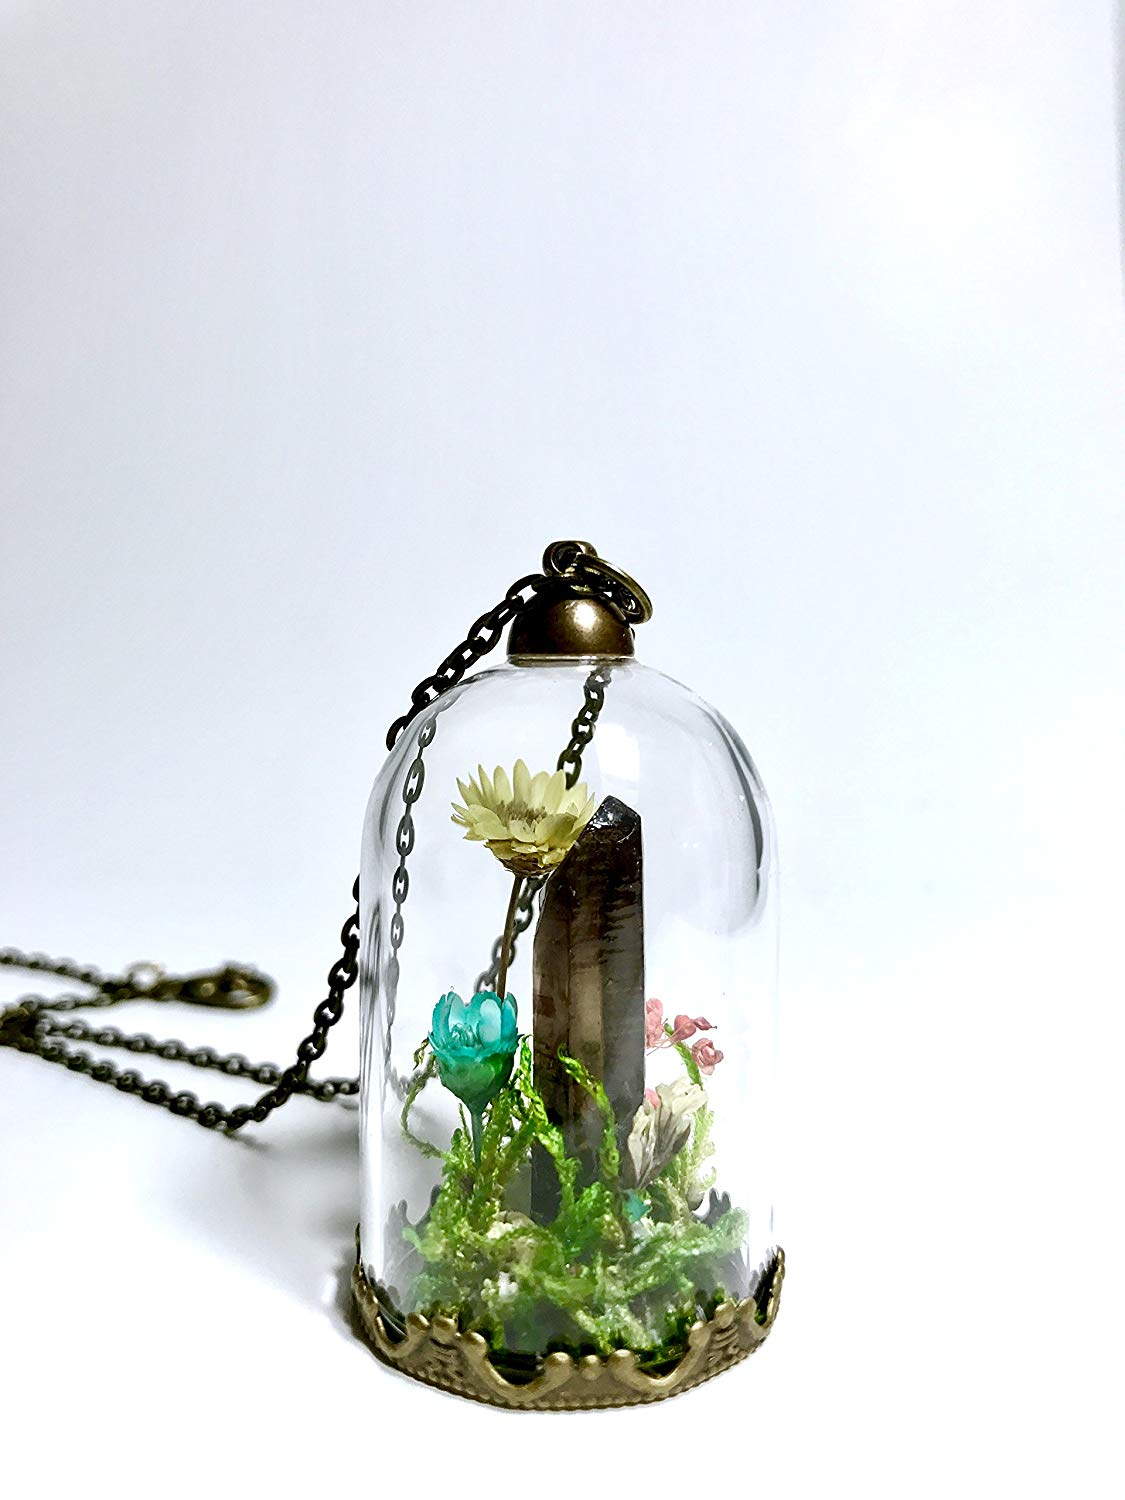 Cheap Terrarium Necklace Find Terrarium Necklace Deals On Line At Alibaba Com